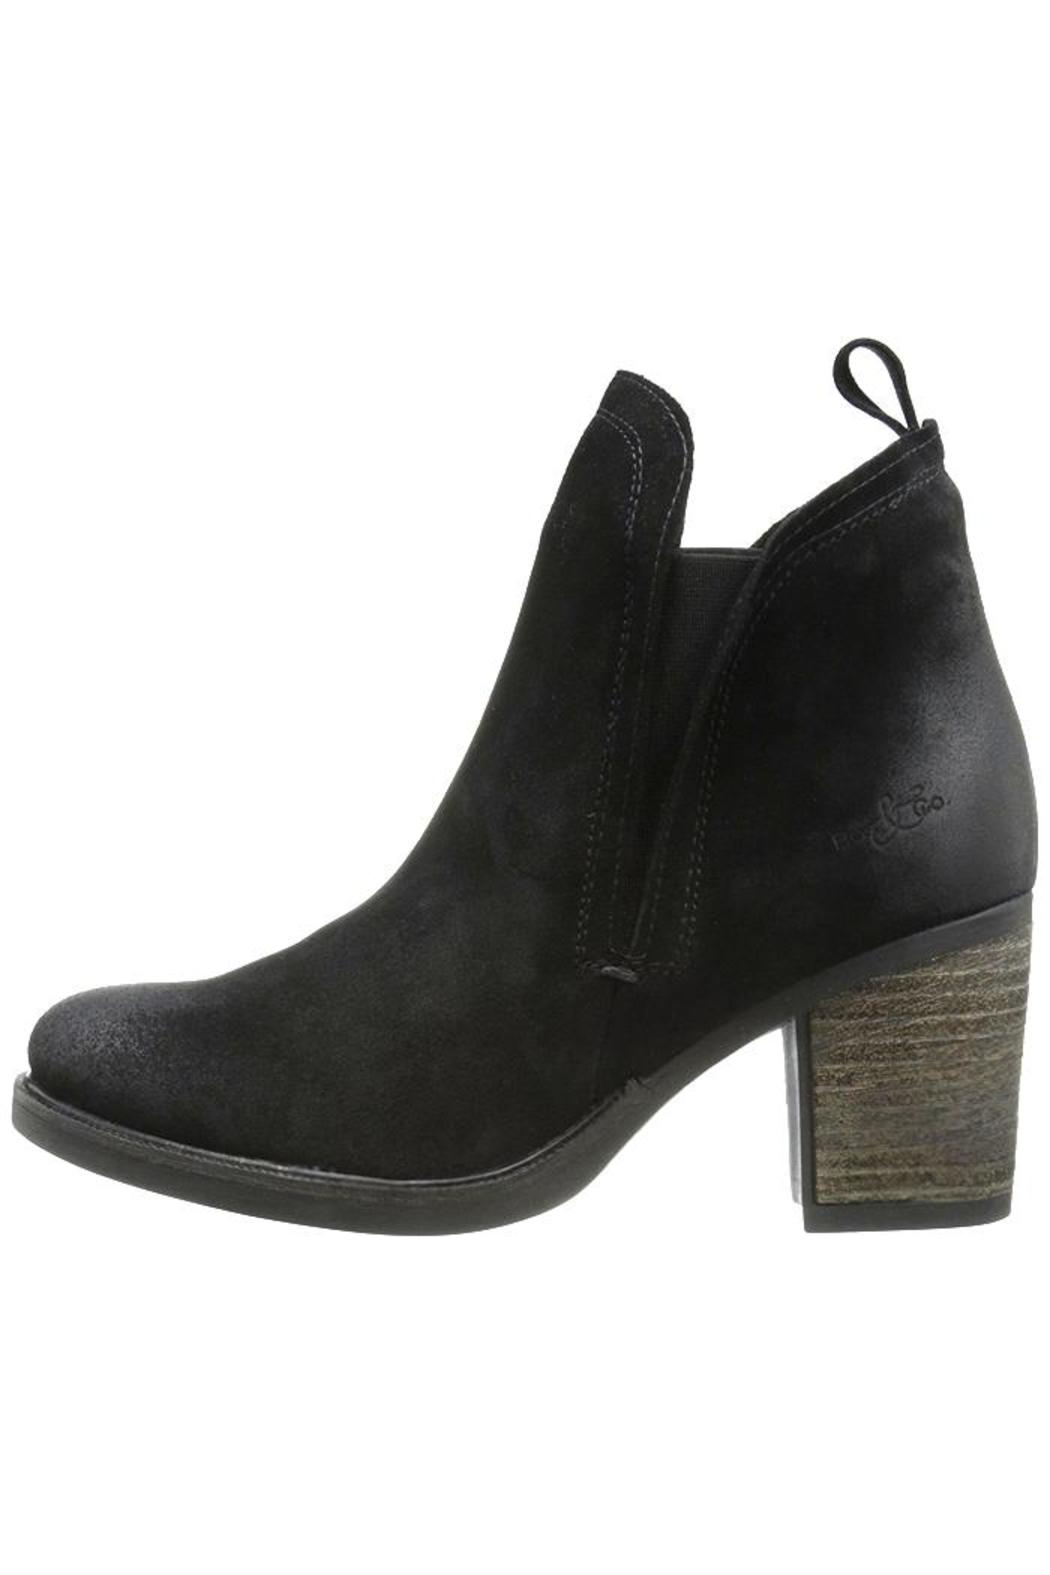 bos suede chelsea boot from toronto by mi giovi shoptiques